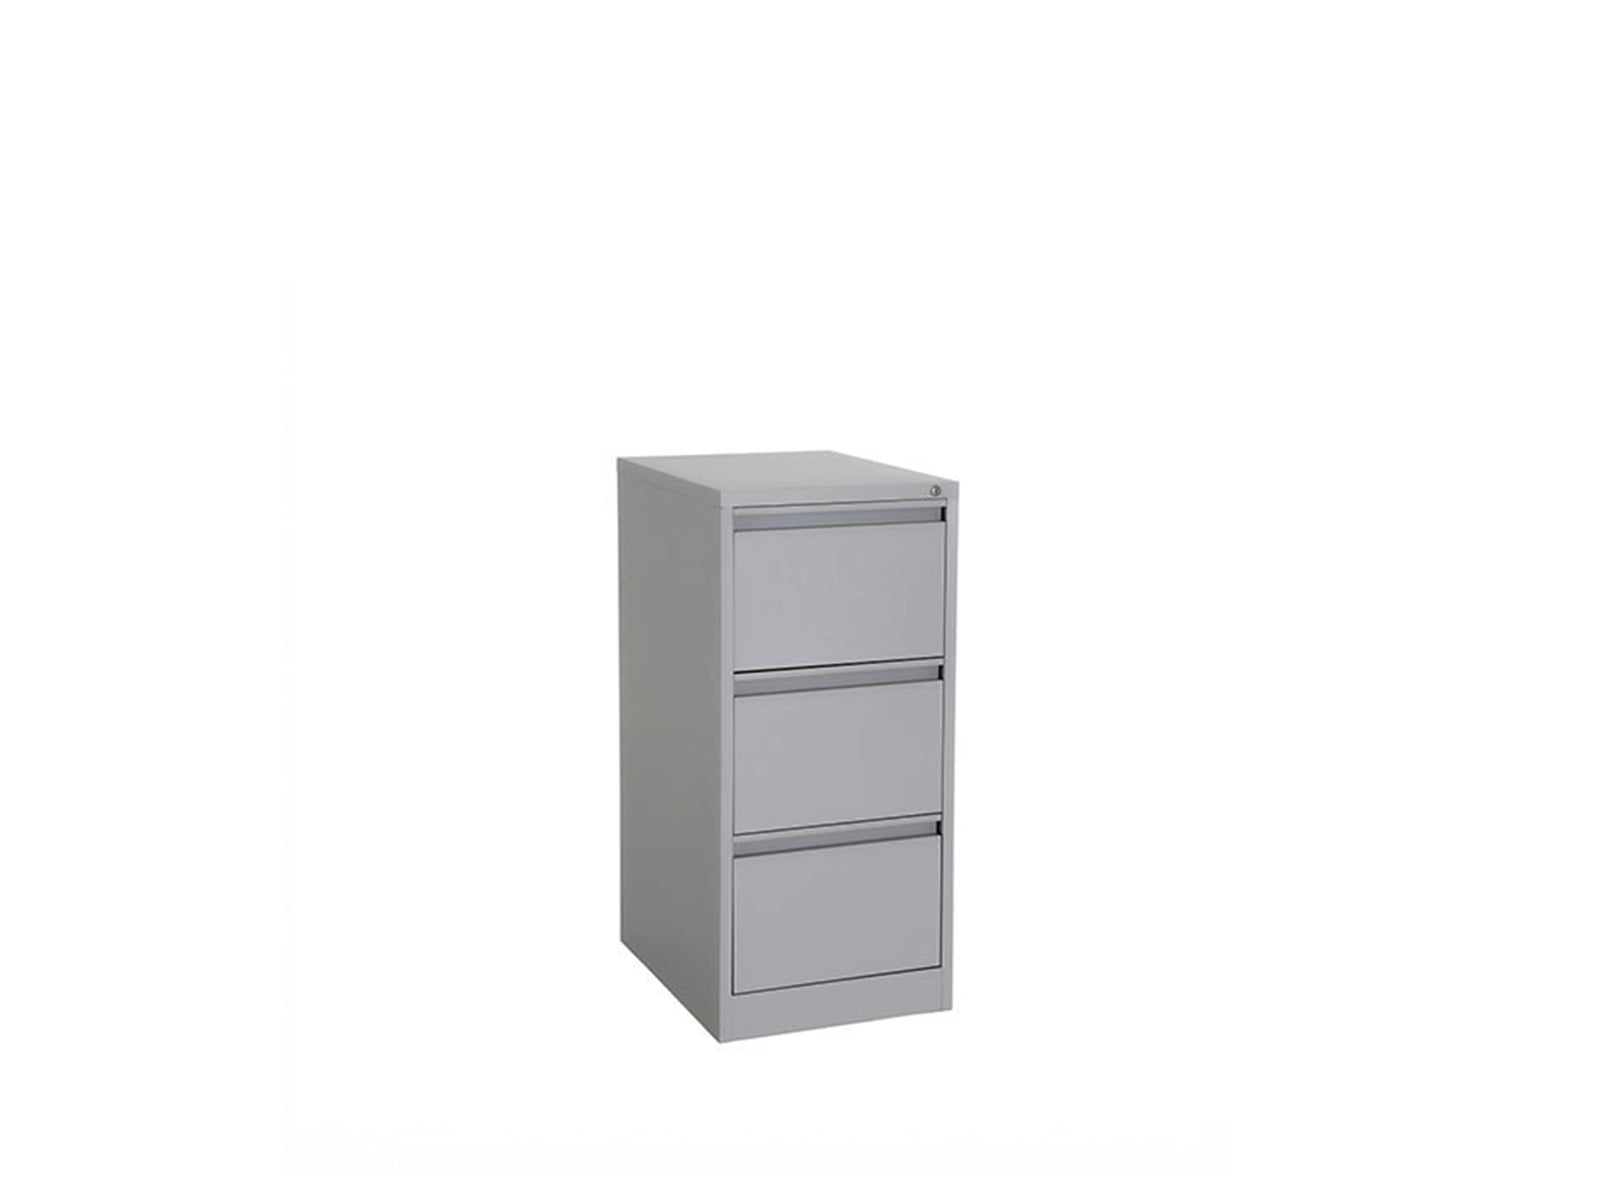 Proceed Filing Cabinet 3 Drawer - Workspace Furniture Home and Office Filing and Steel Storage